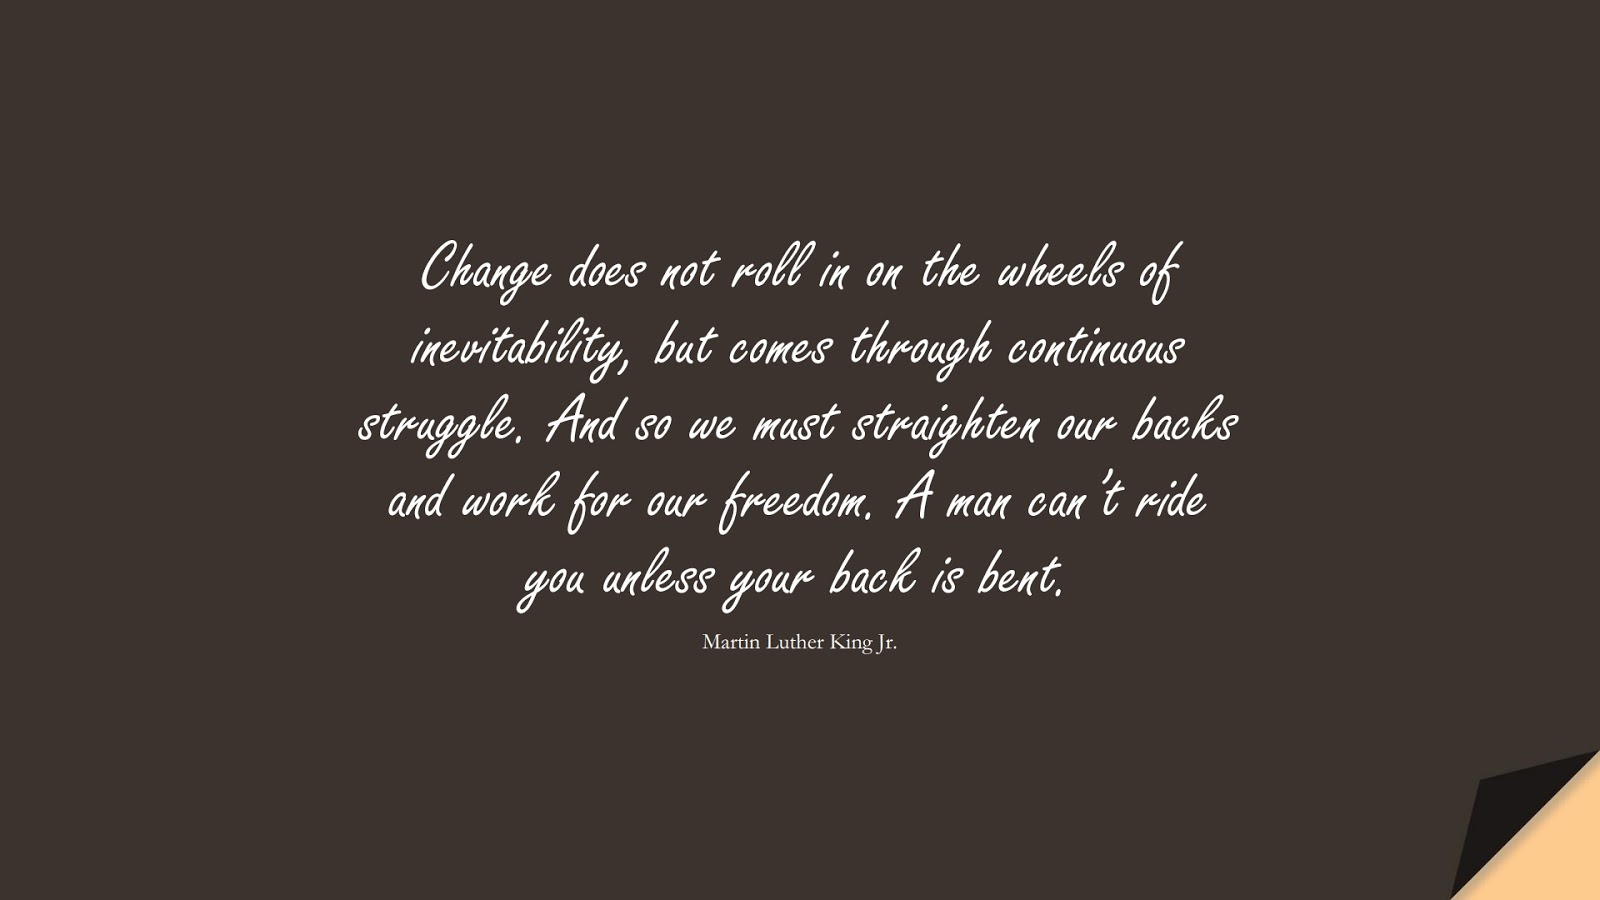 Change does not roll in on the wheels of inevitability, but comes through continuous struggle. And so we must straighten our backs and work for our freedom. A man can't ride you unless your back is bent. (Martin Luther King Jr.);  #HardWorkQuotes